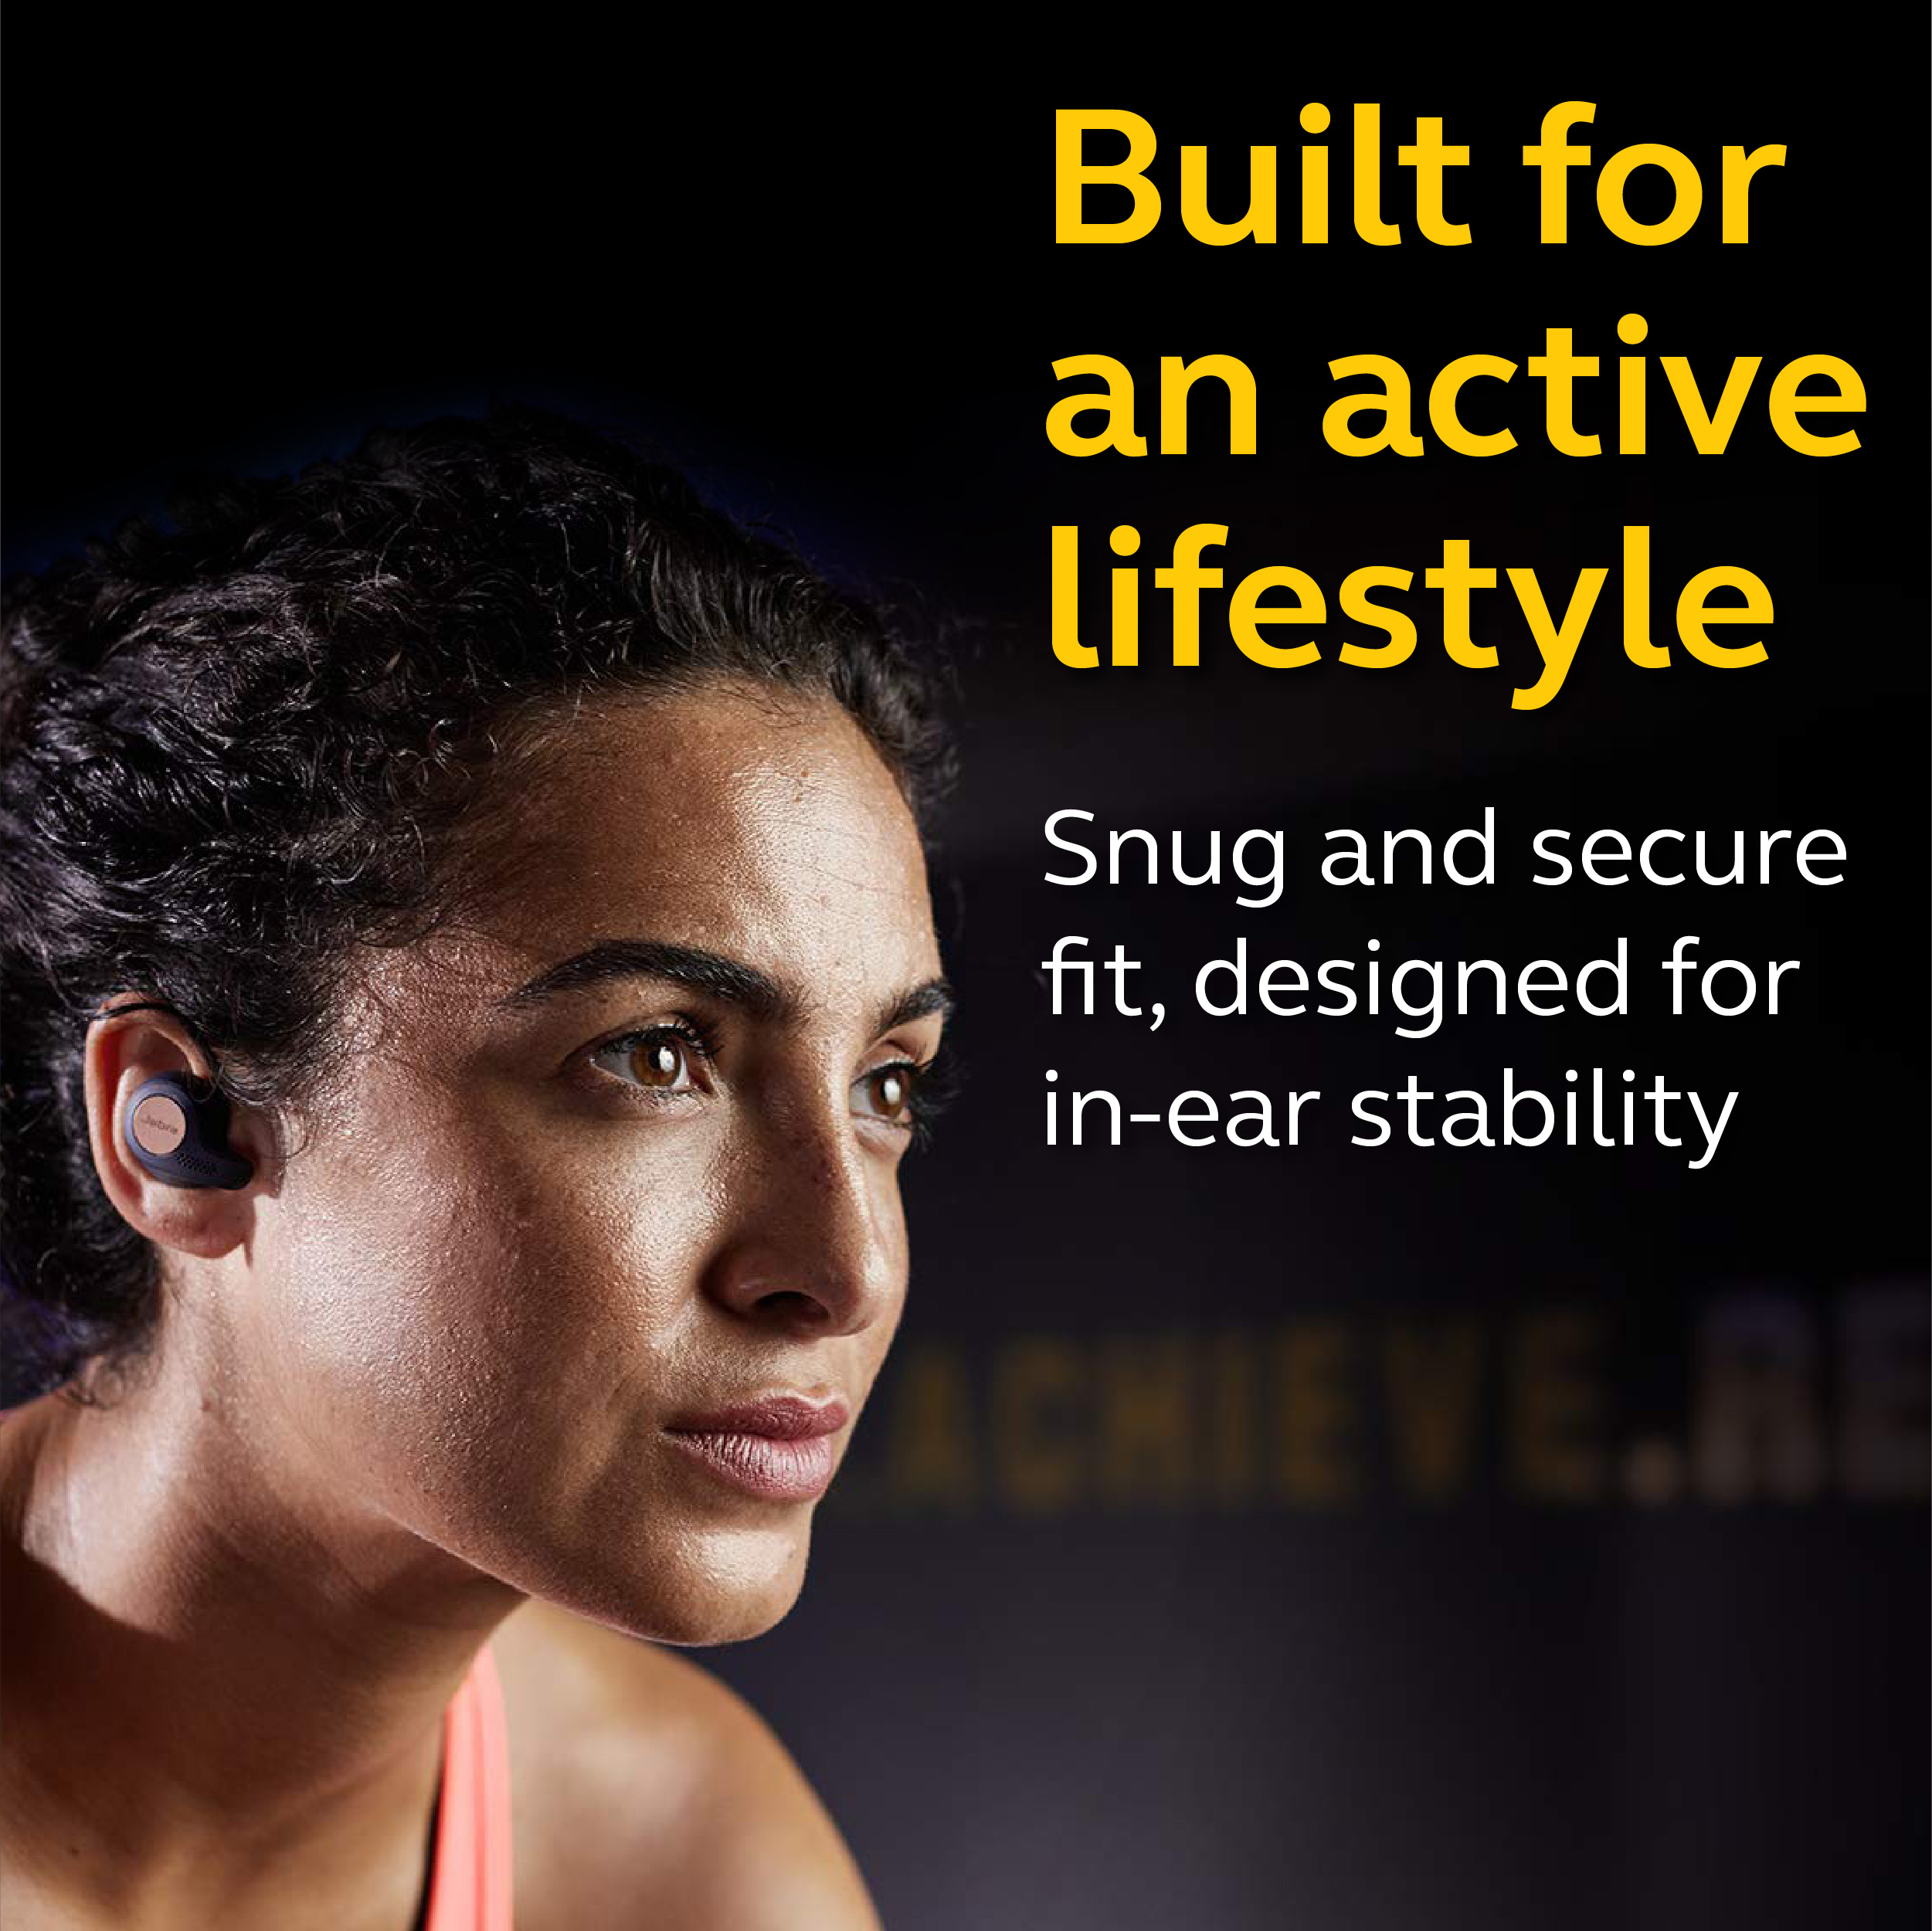 Jabra-Elite-Active-65t-Alexa-True-Wireless-Sport-Earbuds-with-Charging-Case-NEW thumbnail 8